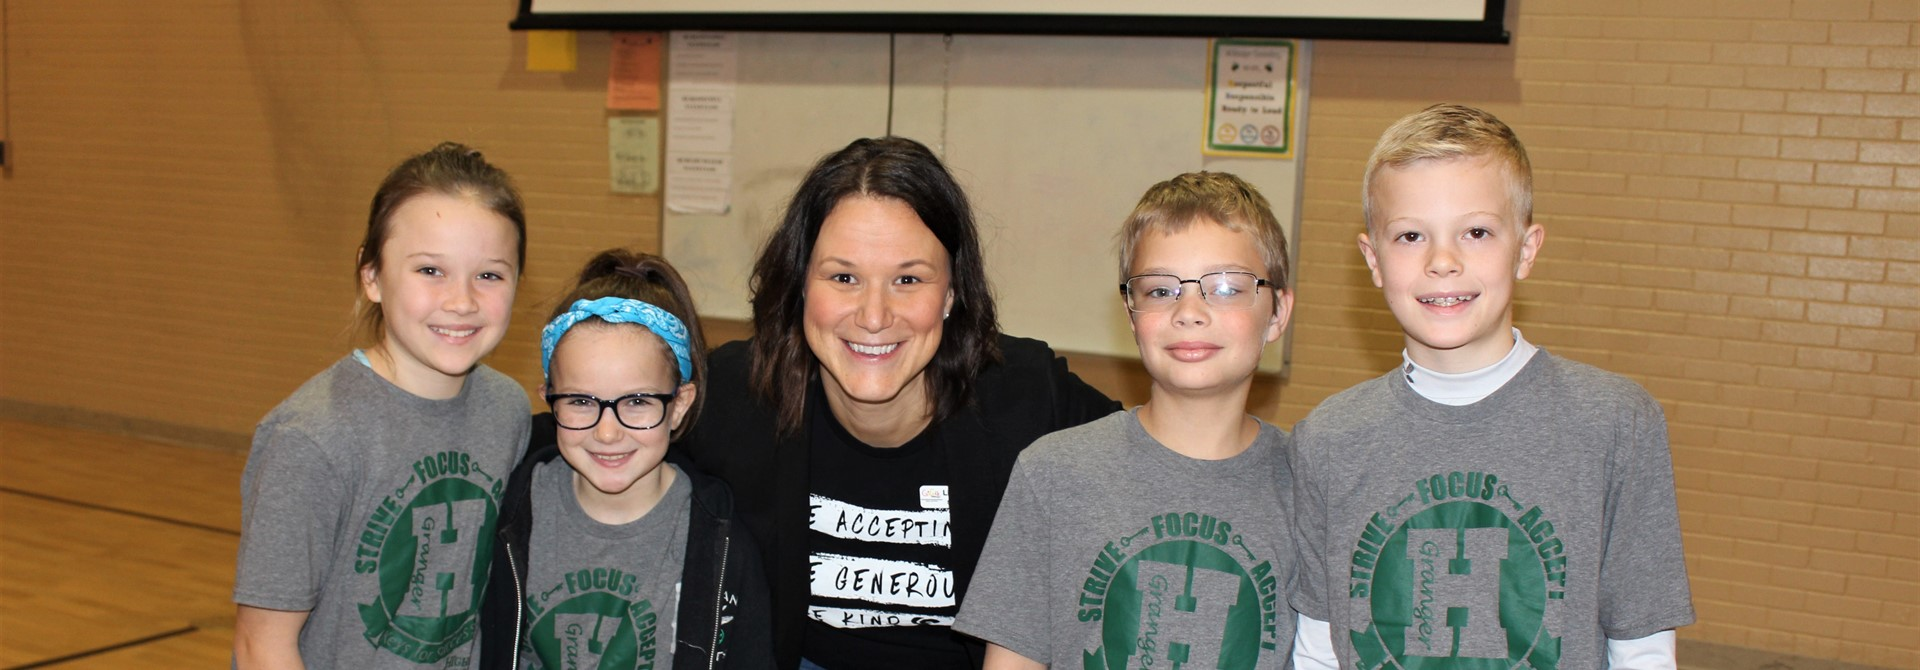 Lizz Maxwell, Director of GiGi's Playhouse, Visits Granger Elementary